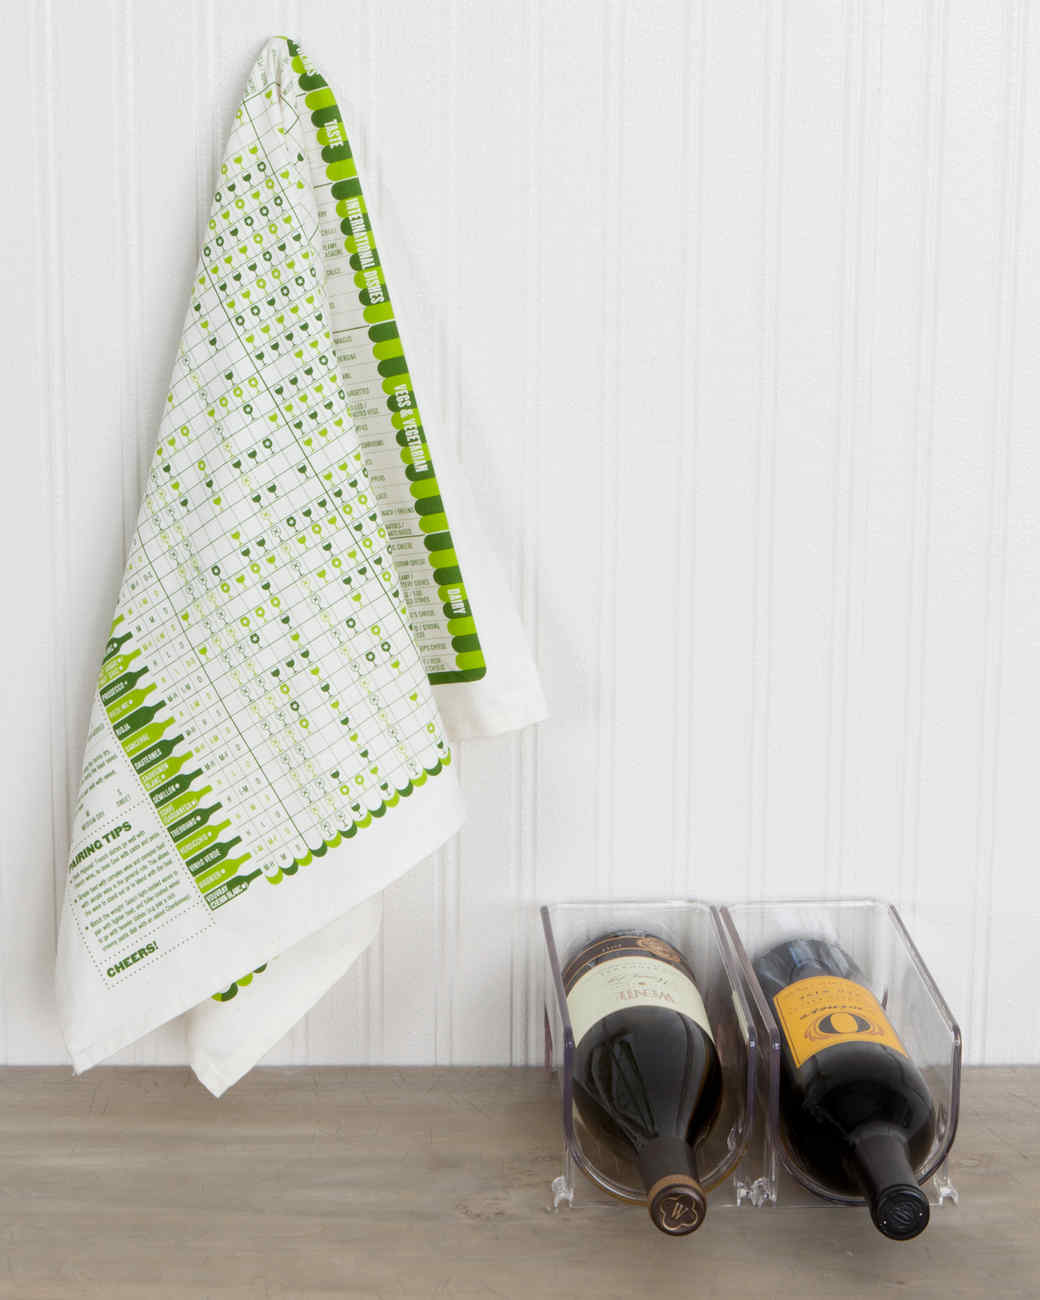 wine-towel-mothers-day-0383-d110204.jpg